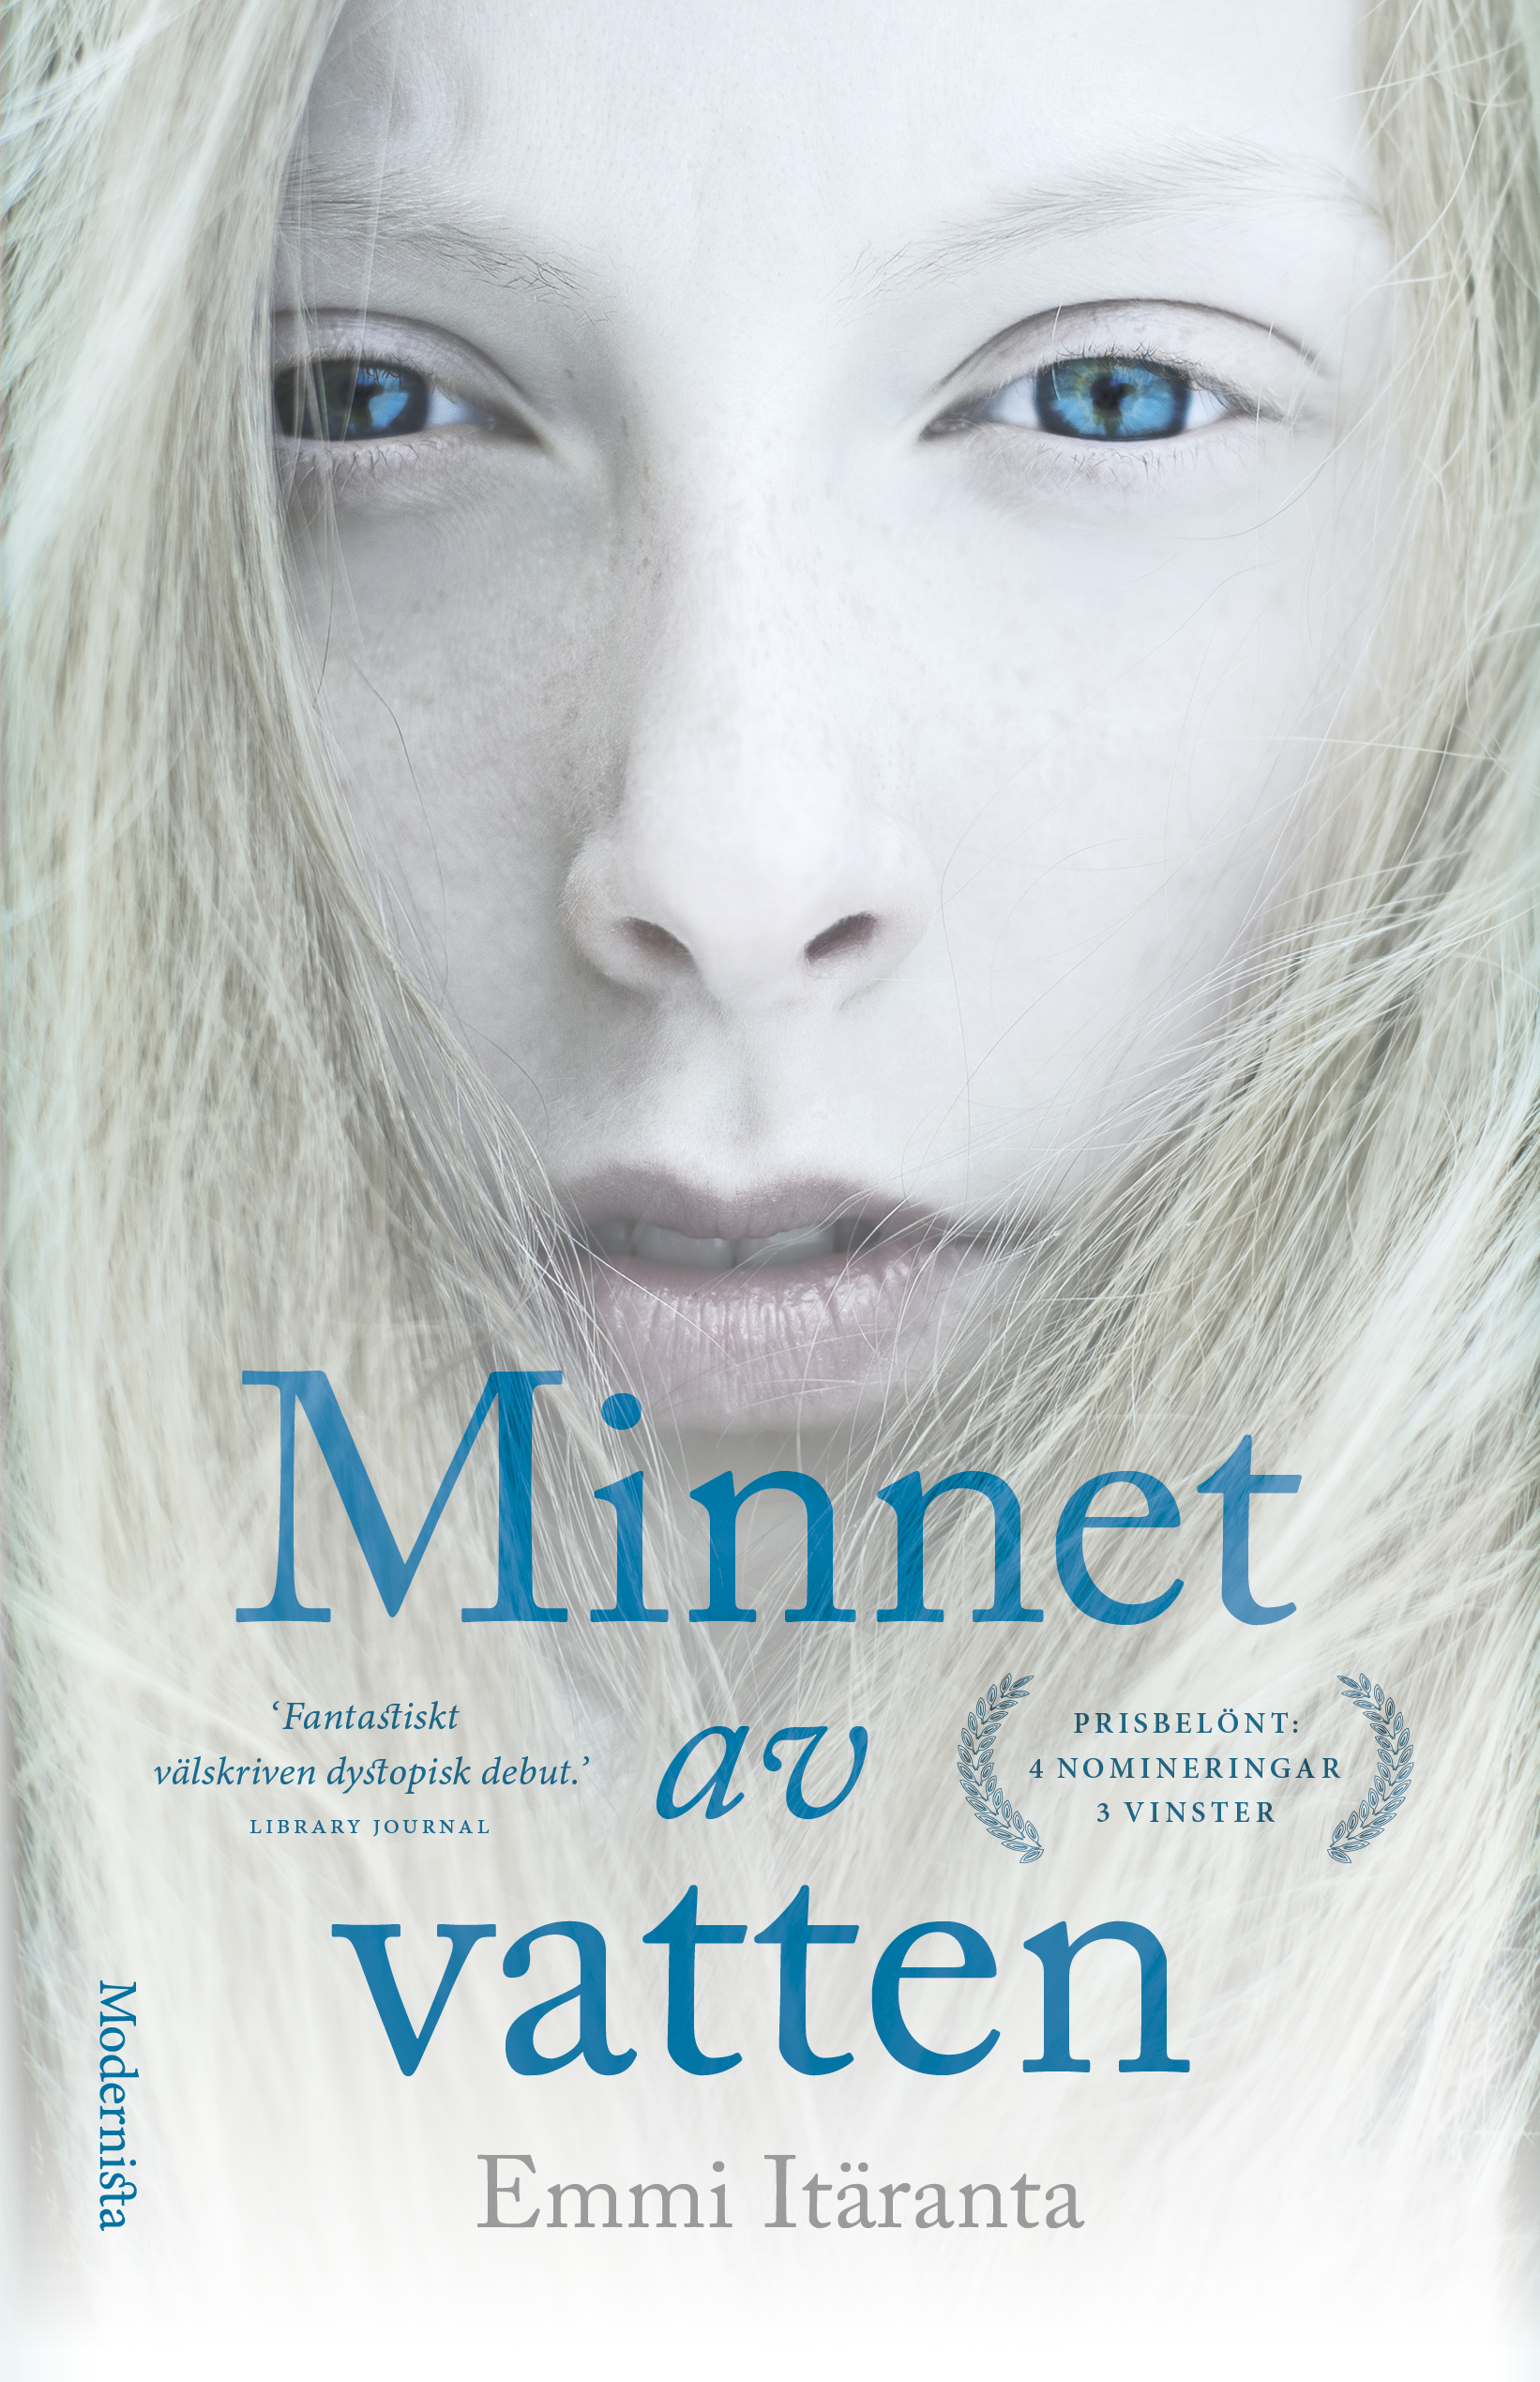 Minnet av vatten book cover